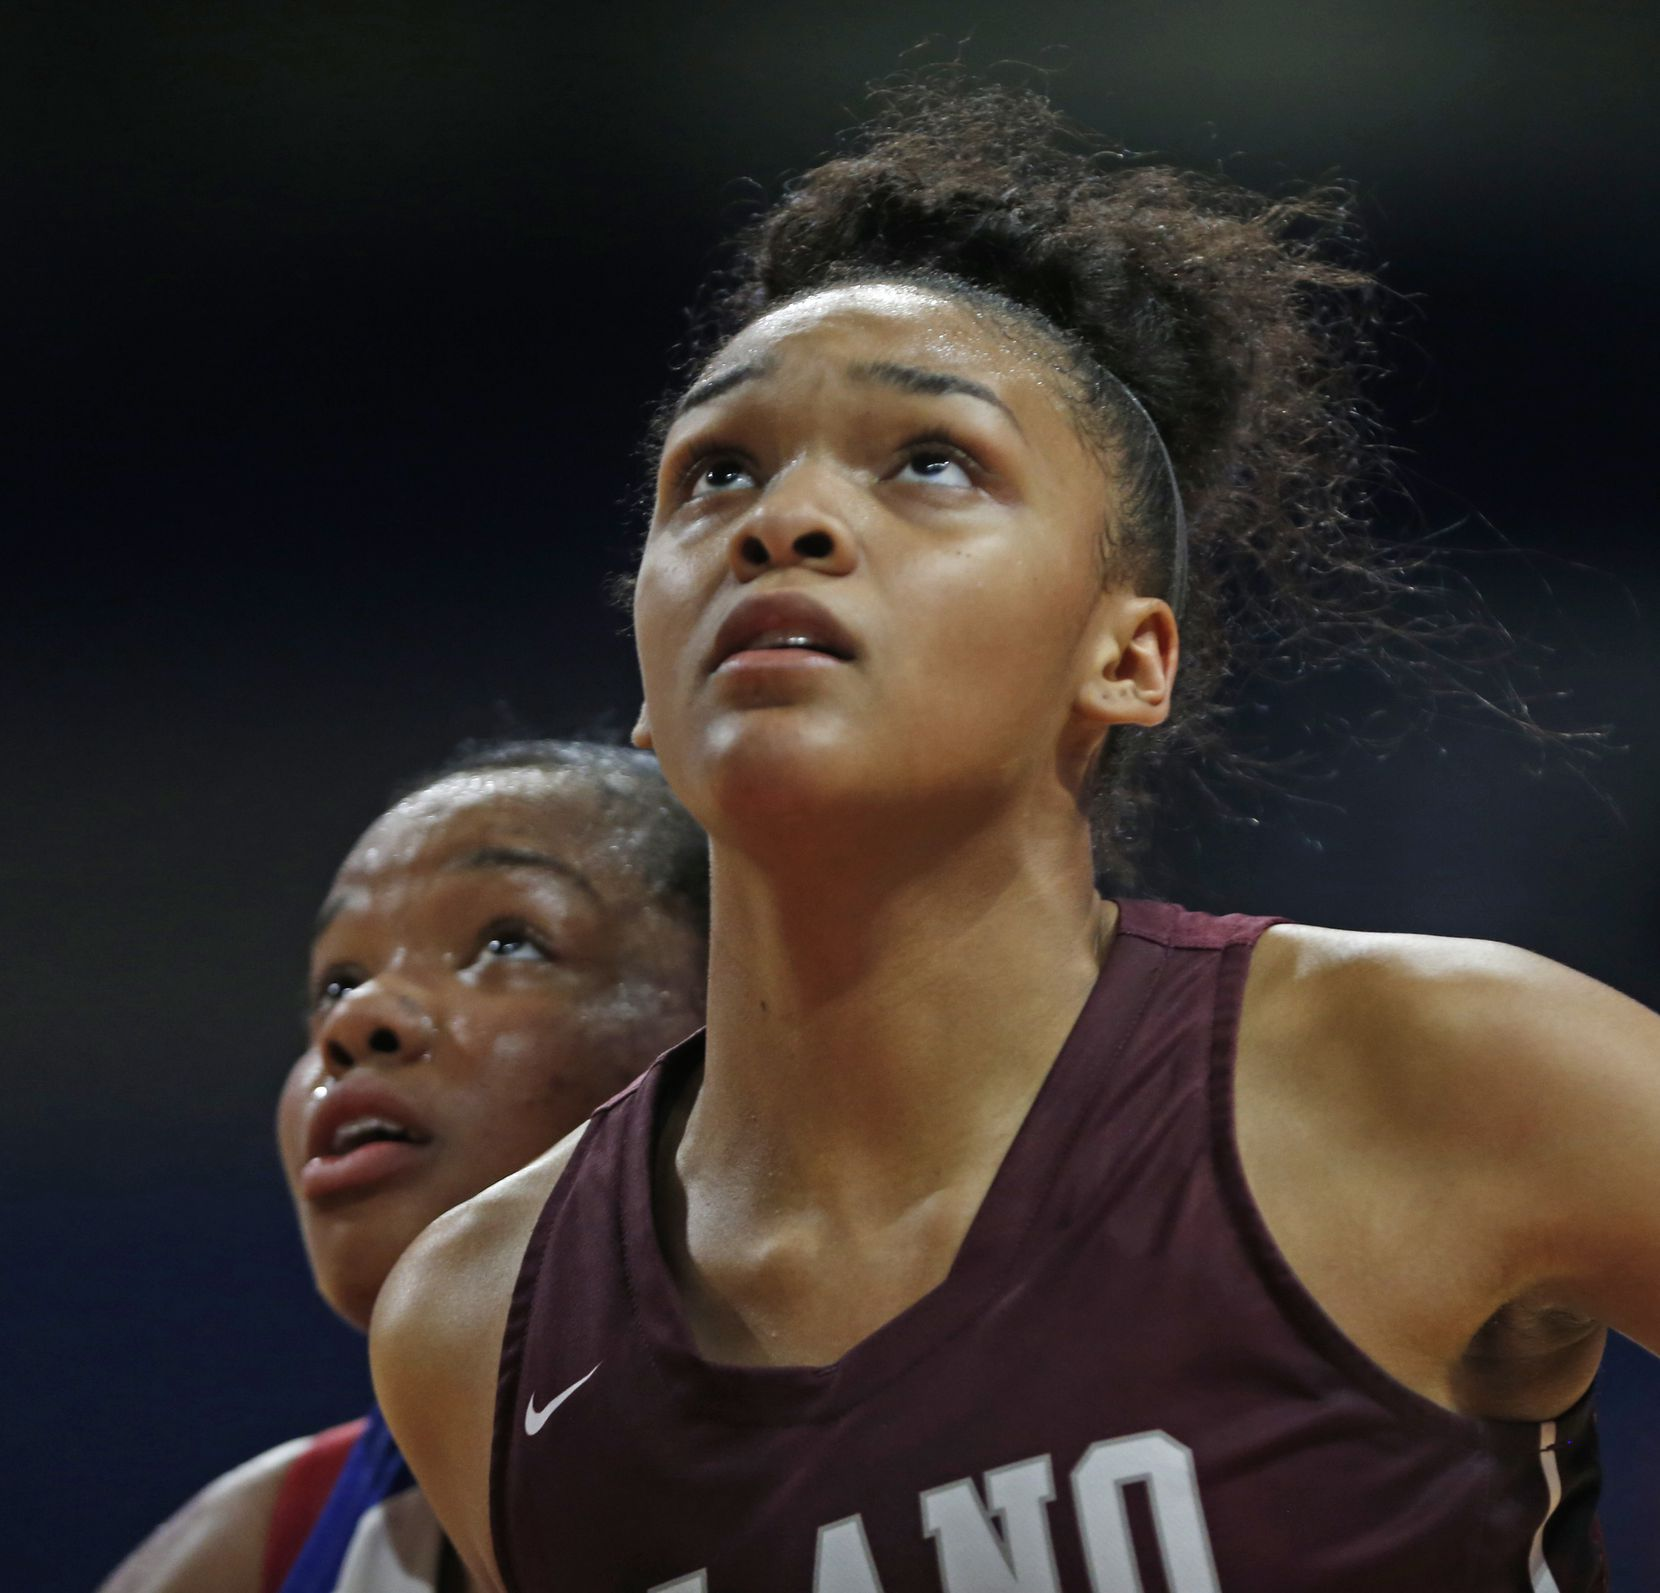 Plano Jordyn Merritt positions herself for a rebound. Plano v Cypress Creek in a UIL girls basketball Class 6A on Friday, March 2, 2018 at the Alamodome.  (Ronald Cortes/Special Contributor)